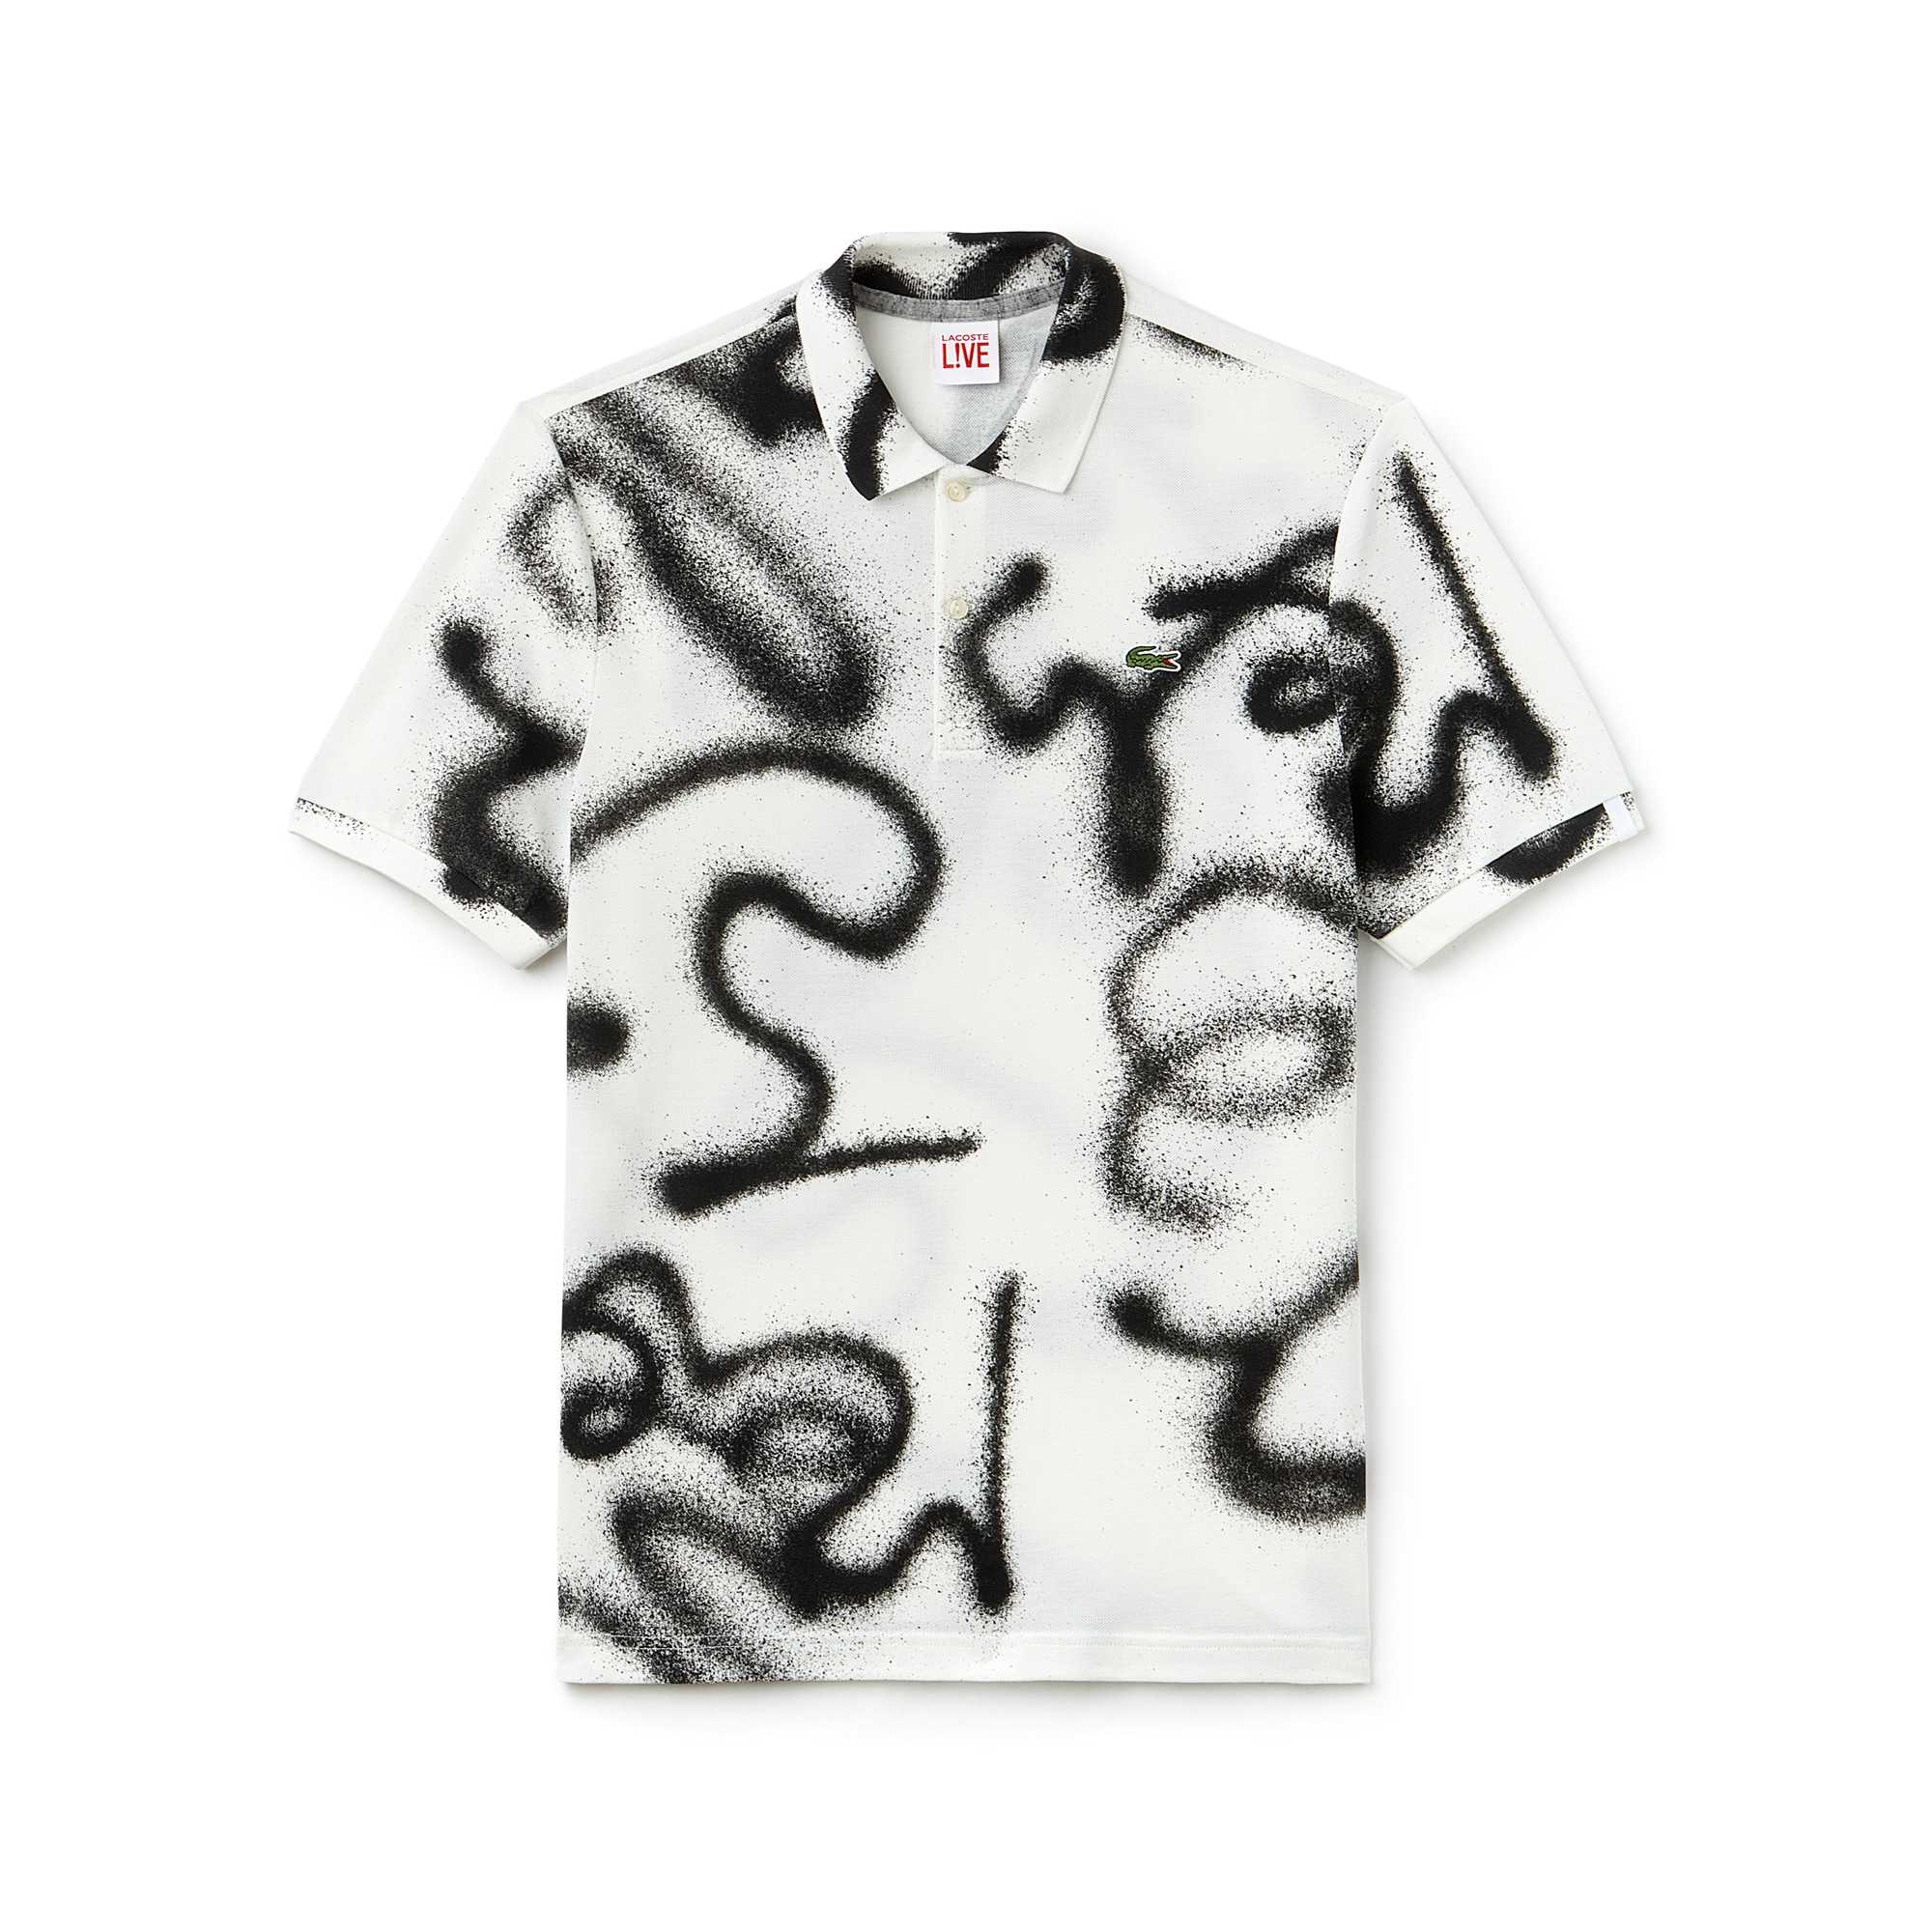 Men's LIVE Regular Fit Graffiti Piqué Polo